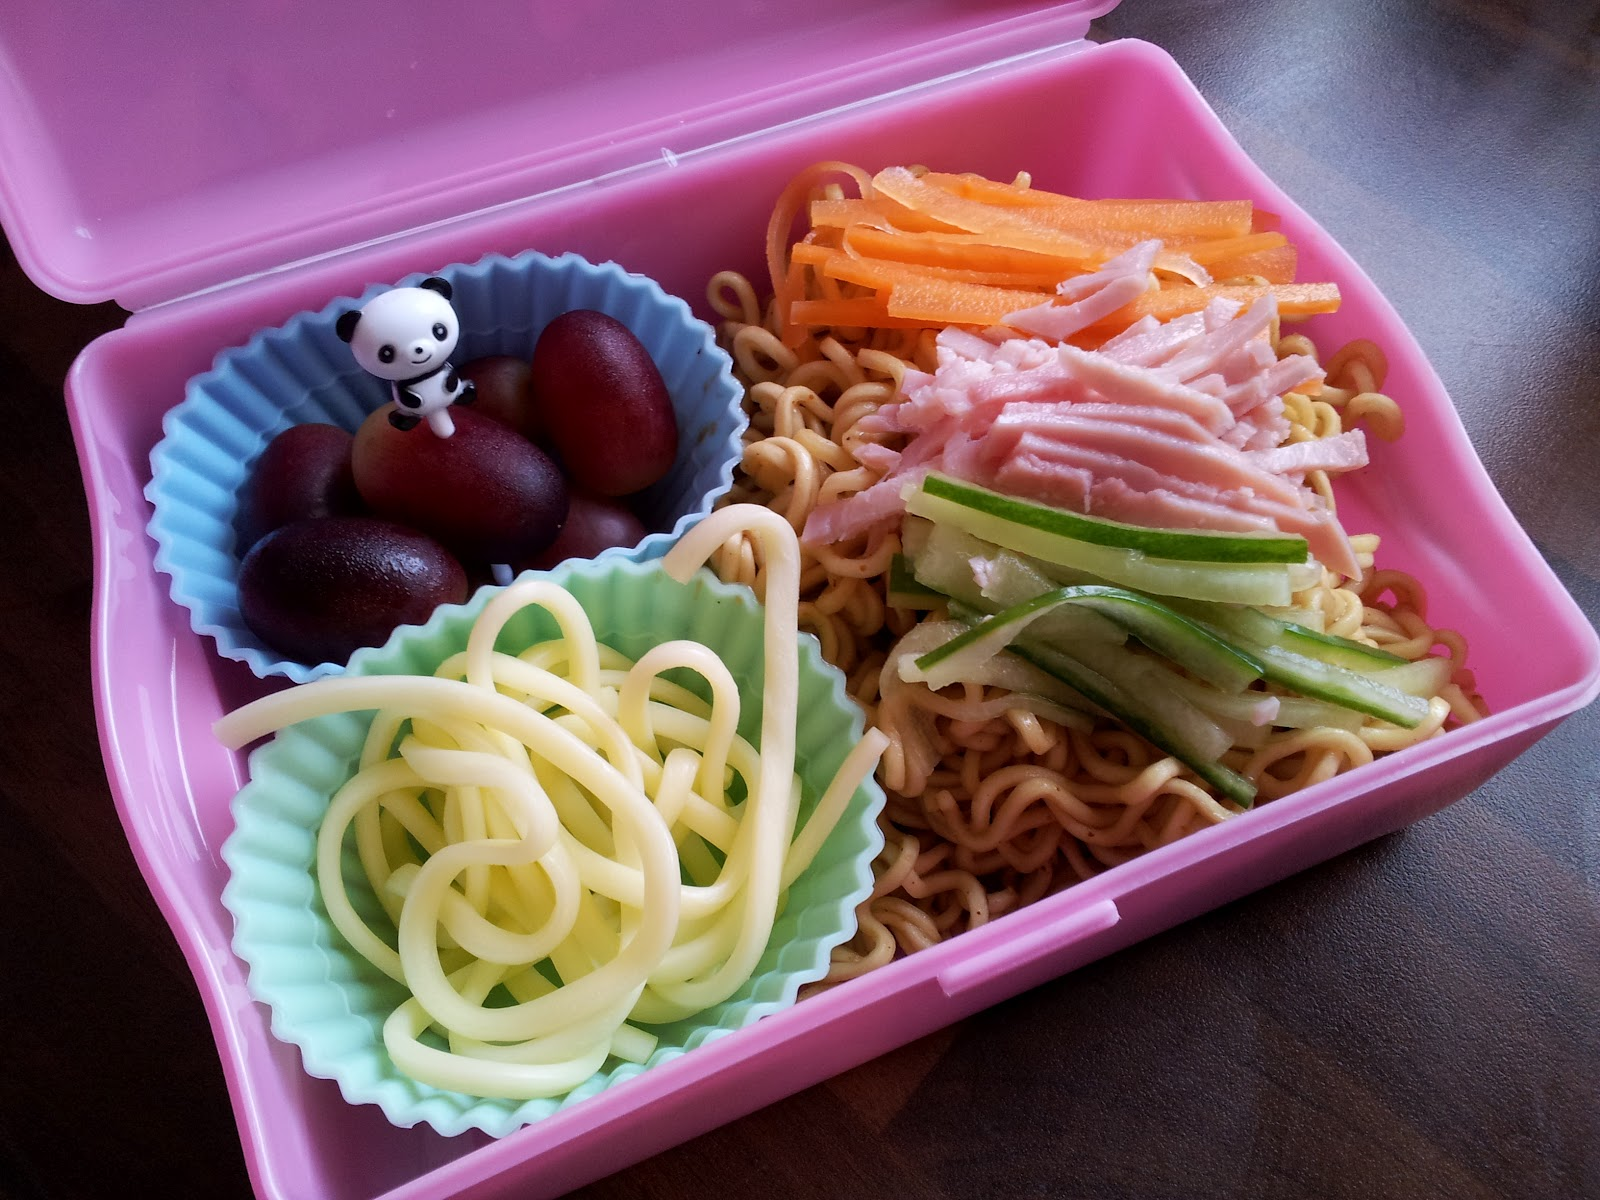 Mie Goreng, Indonesian Style Fried Noodles, Lunchbox idea